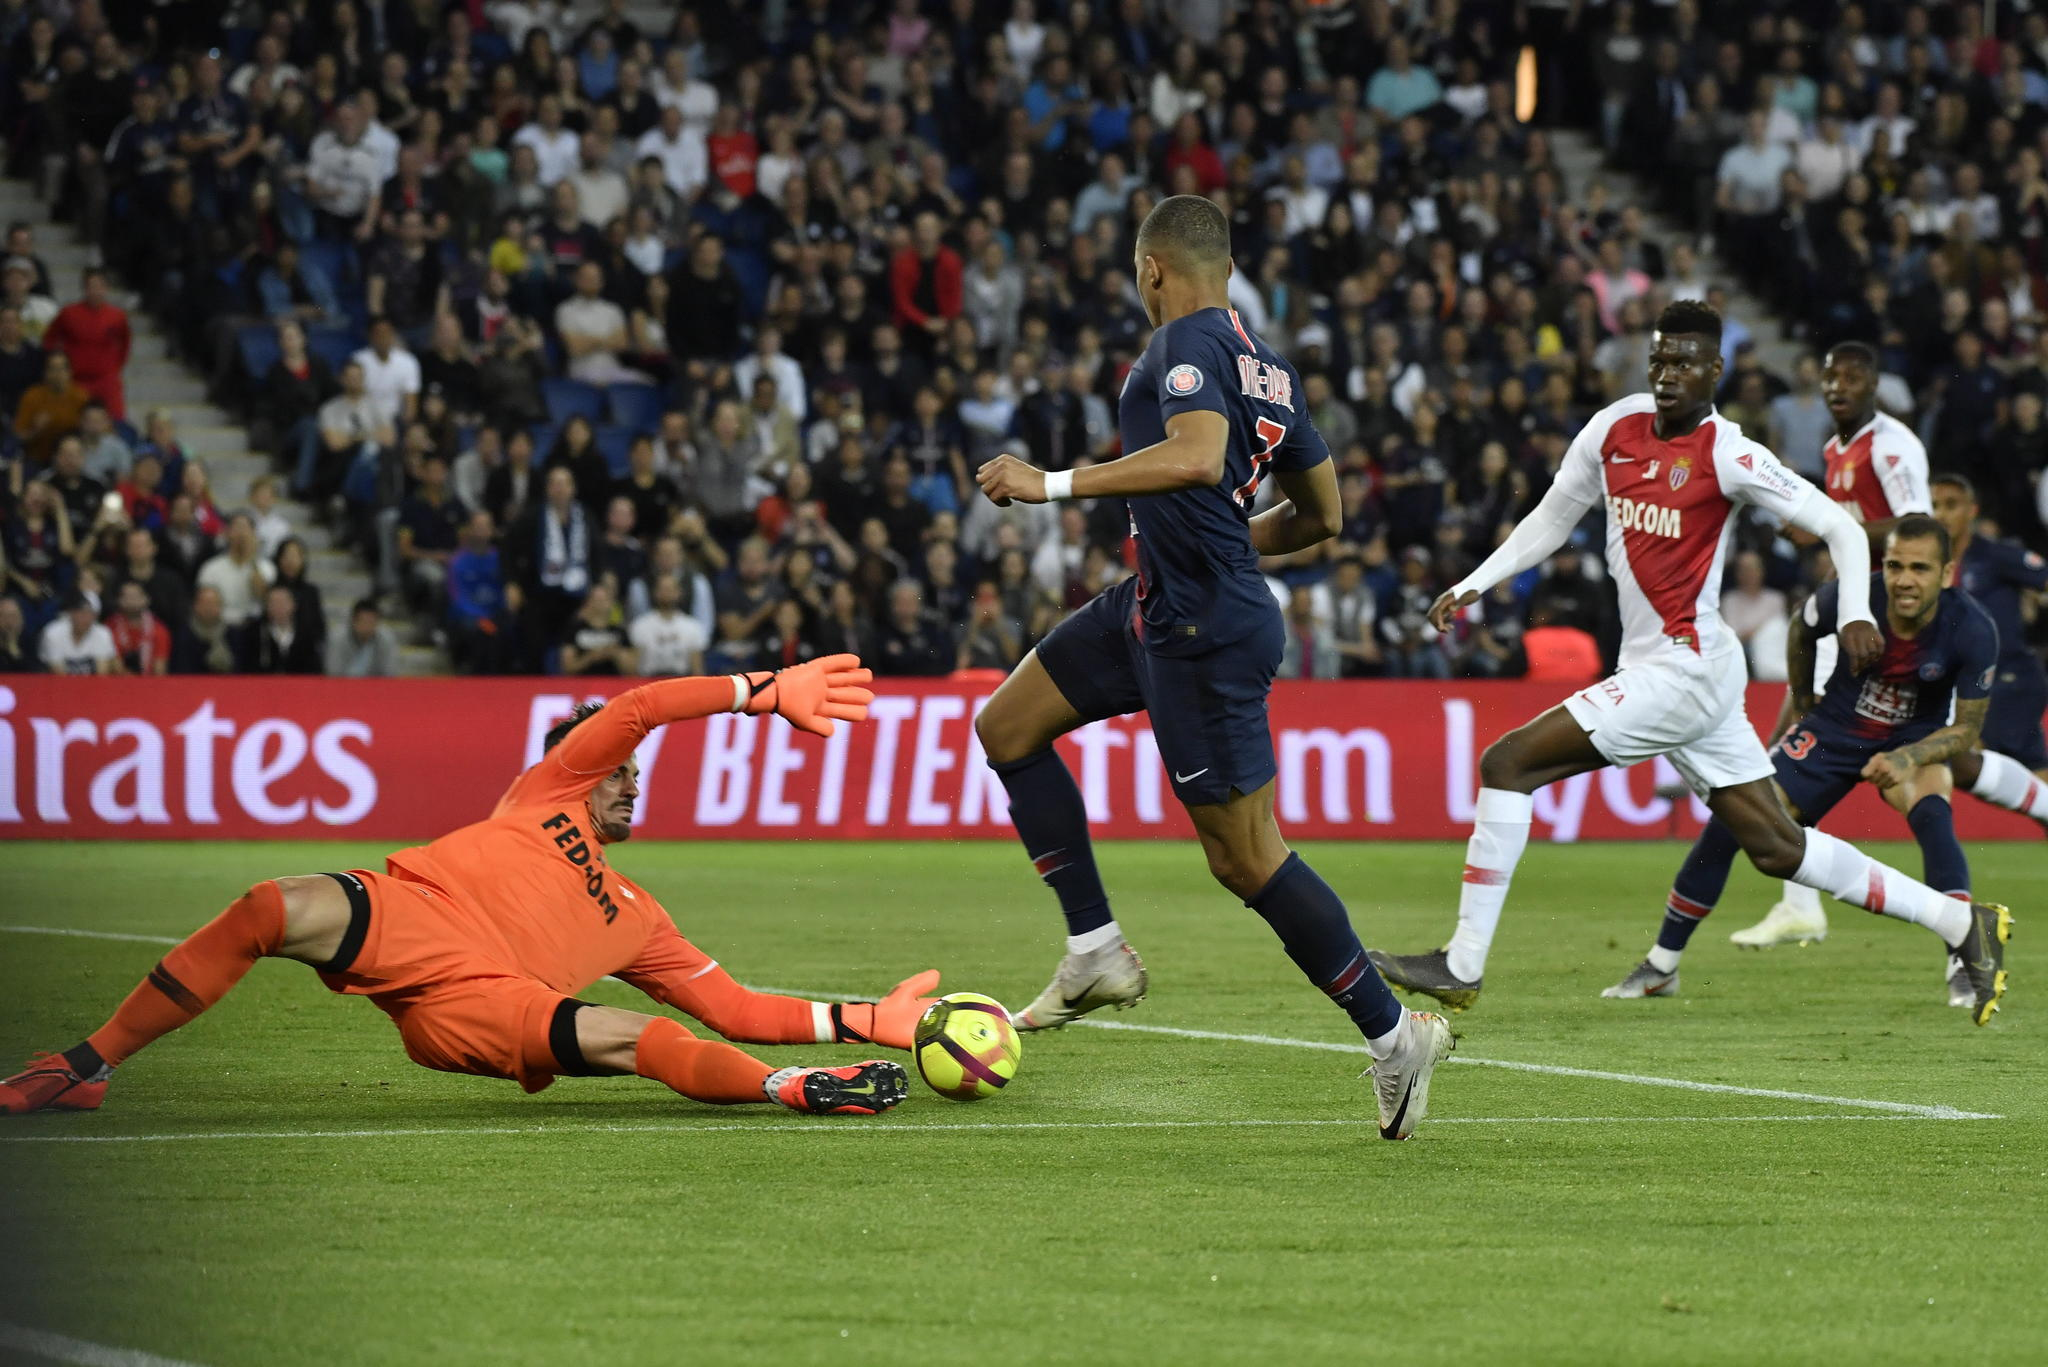 Paris (France), 21/04/2019.- Paris Saint Germains Kylian <HIT>Mbappe</HIT> in action against goalkeeper Diego Benaglio of AS Monaco during the French Ligue 1 soccer match between Paris Saint-Germain (PSG) and AS Monaco at the Parc des Princes stadium in Paris, France, 21 April 2019. (Francia) EFE/EPA/Julien de Rosa